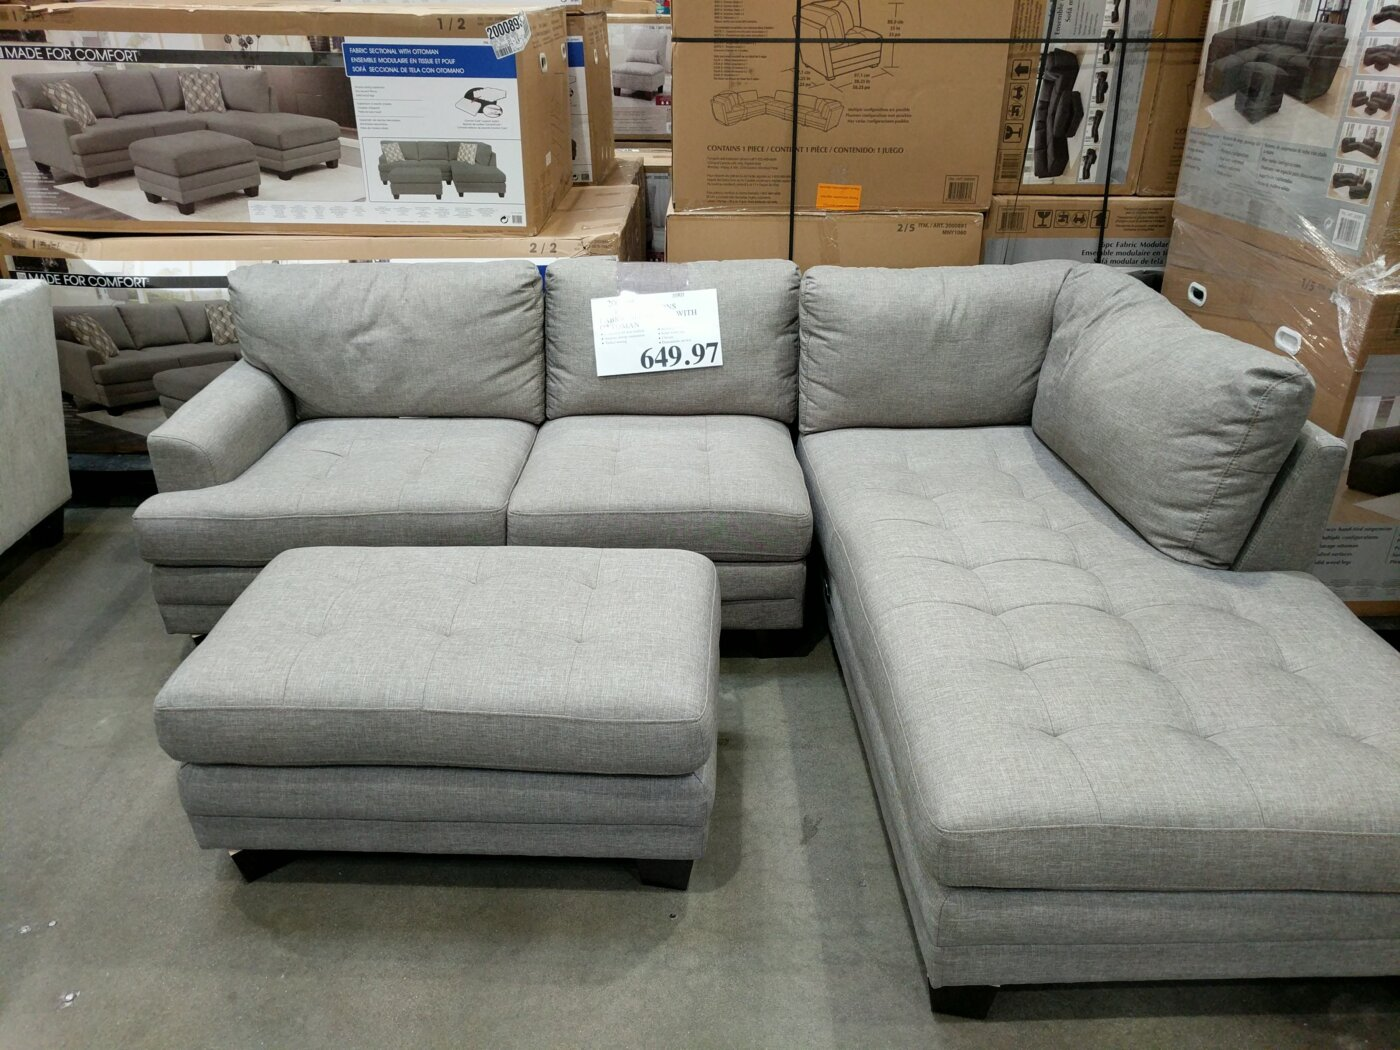 Phenomenal True Innovations Fabric Sectional With Ottoman Costco97 Com Beatyapartments Chair Design Images Beatyapartmentscom